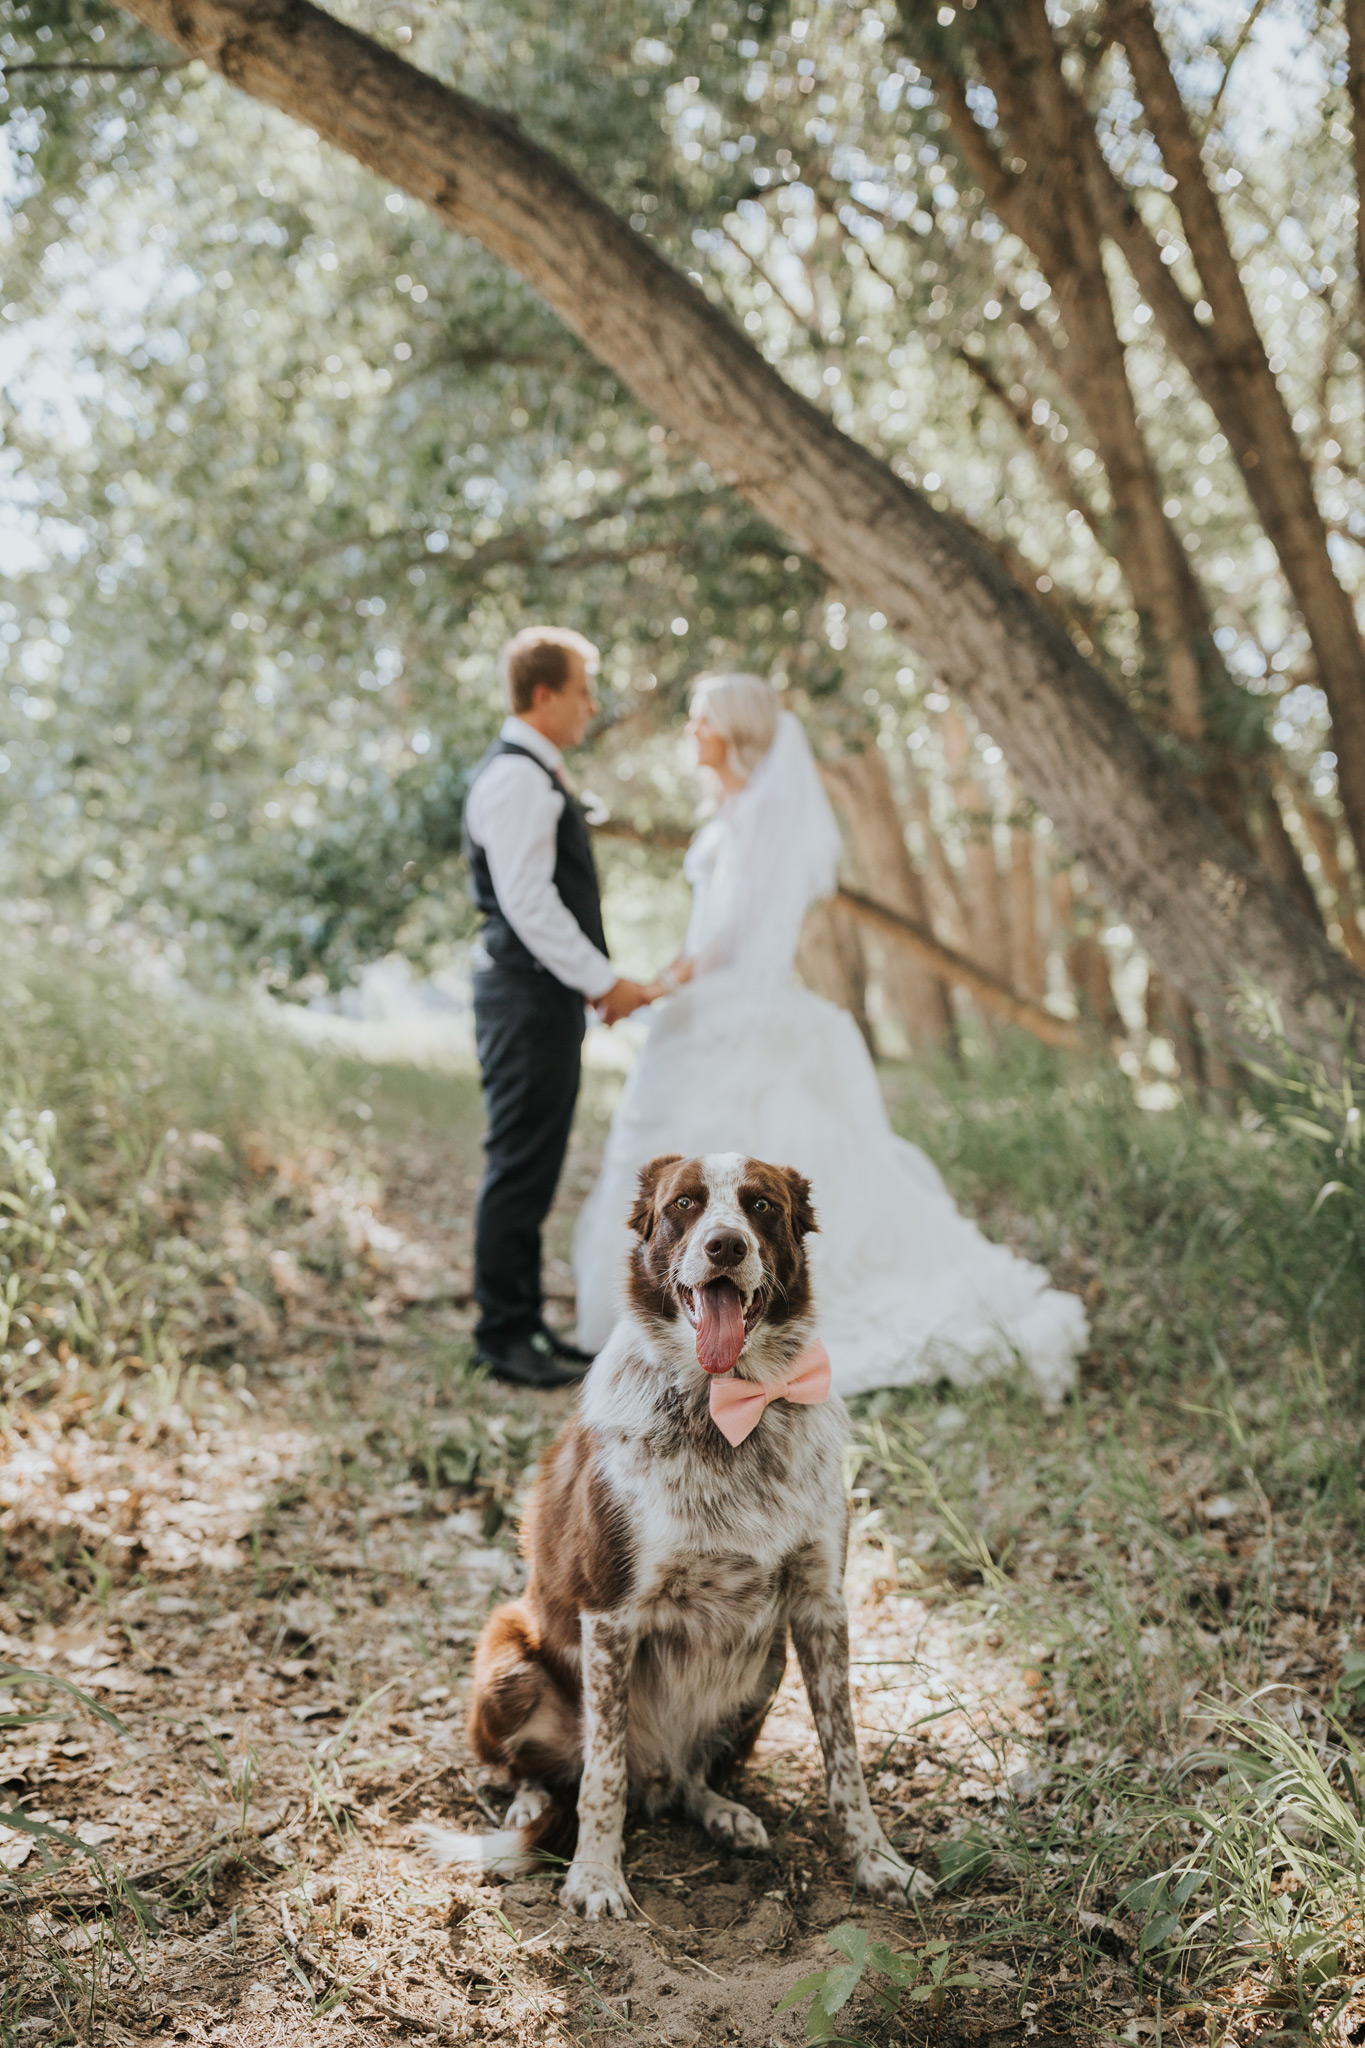 dog wearing bowtie with bride and groom holding hands in the background